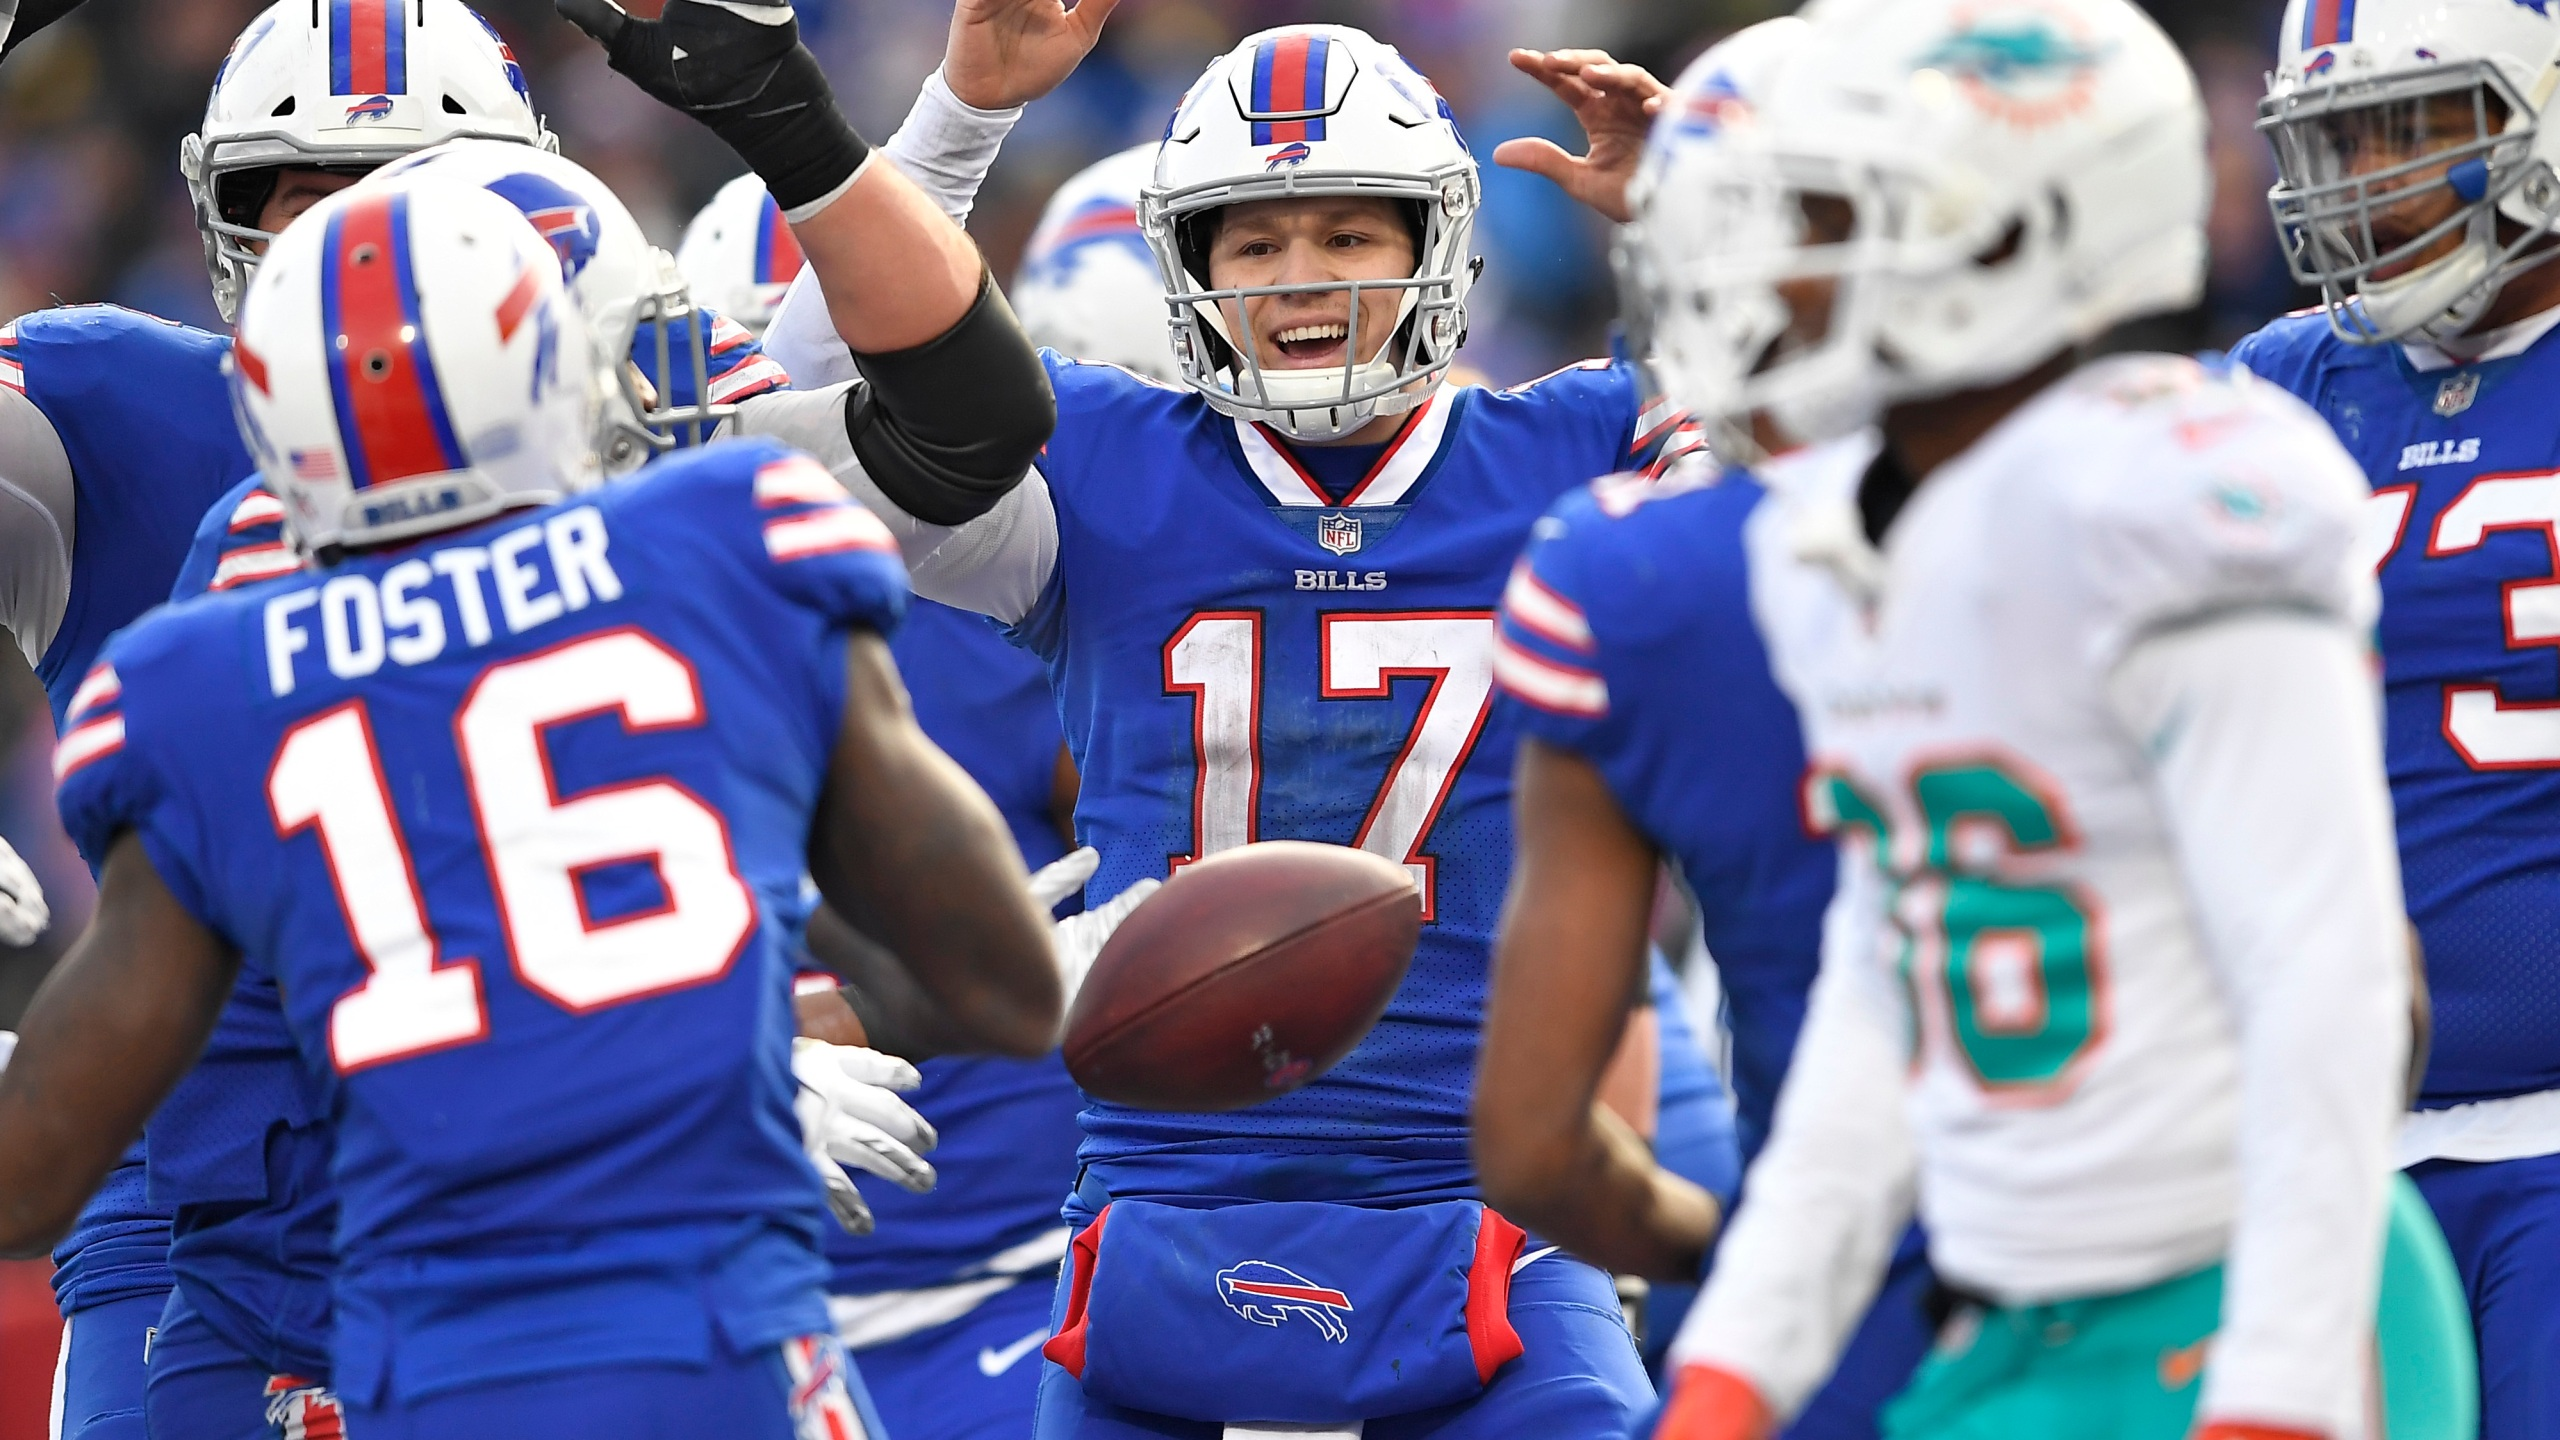 Dolphins Bills Football_1546202001005